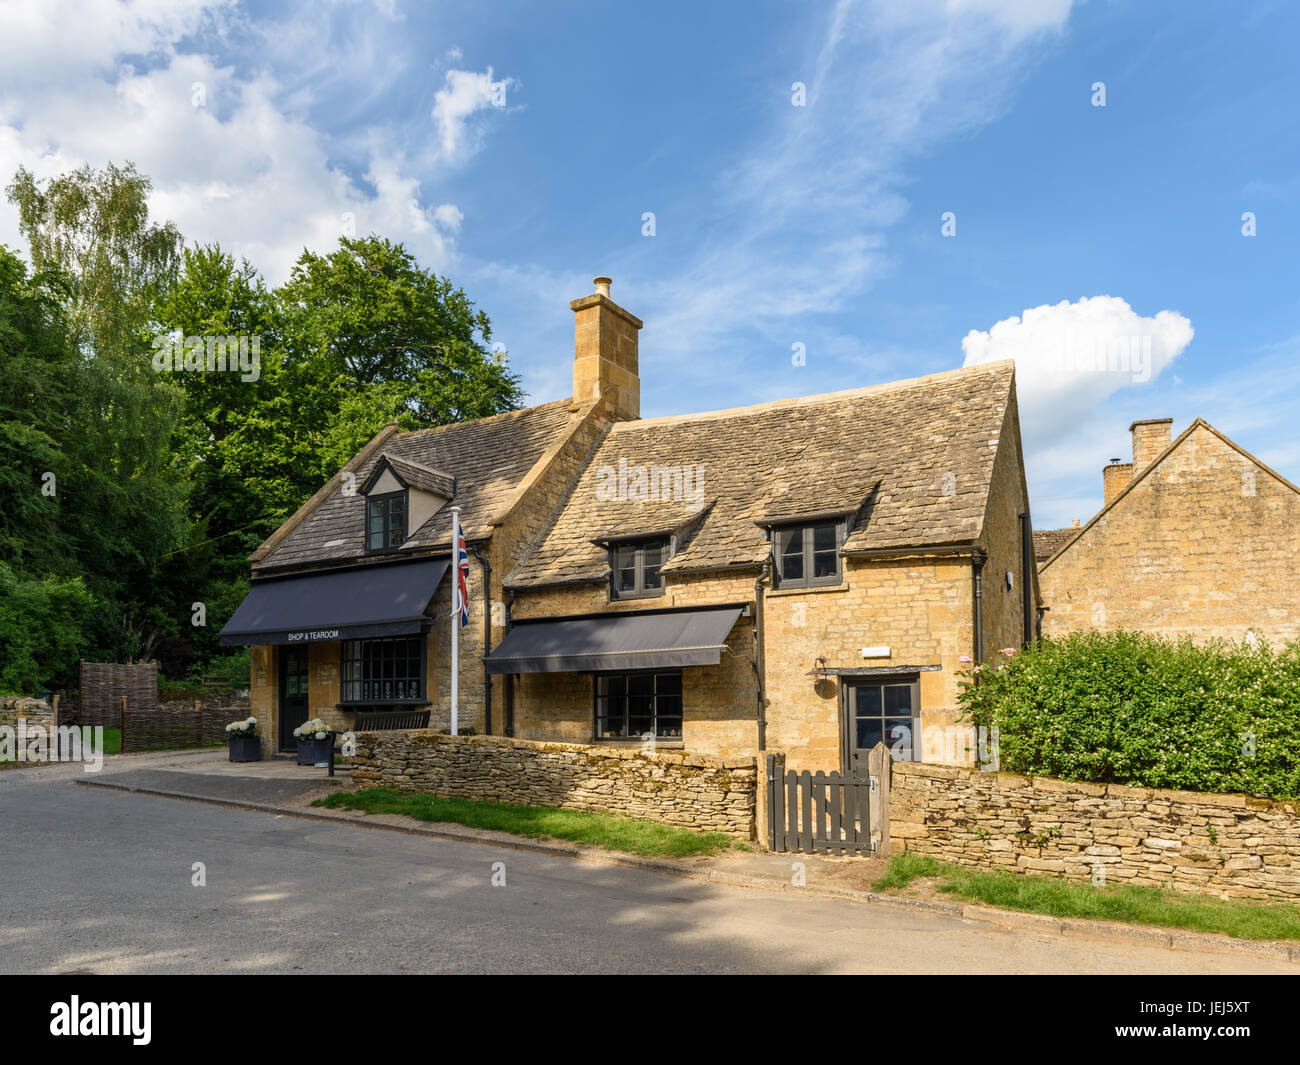 Shop & Tearoom, Temple Guiting, Cotswolds, UK - Stock Image